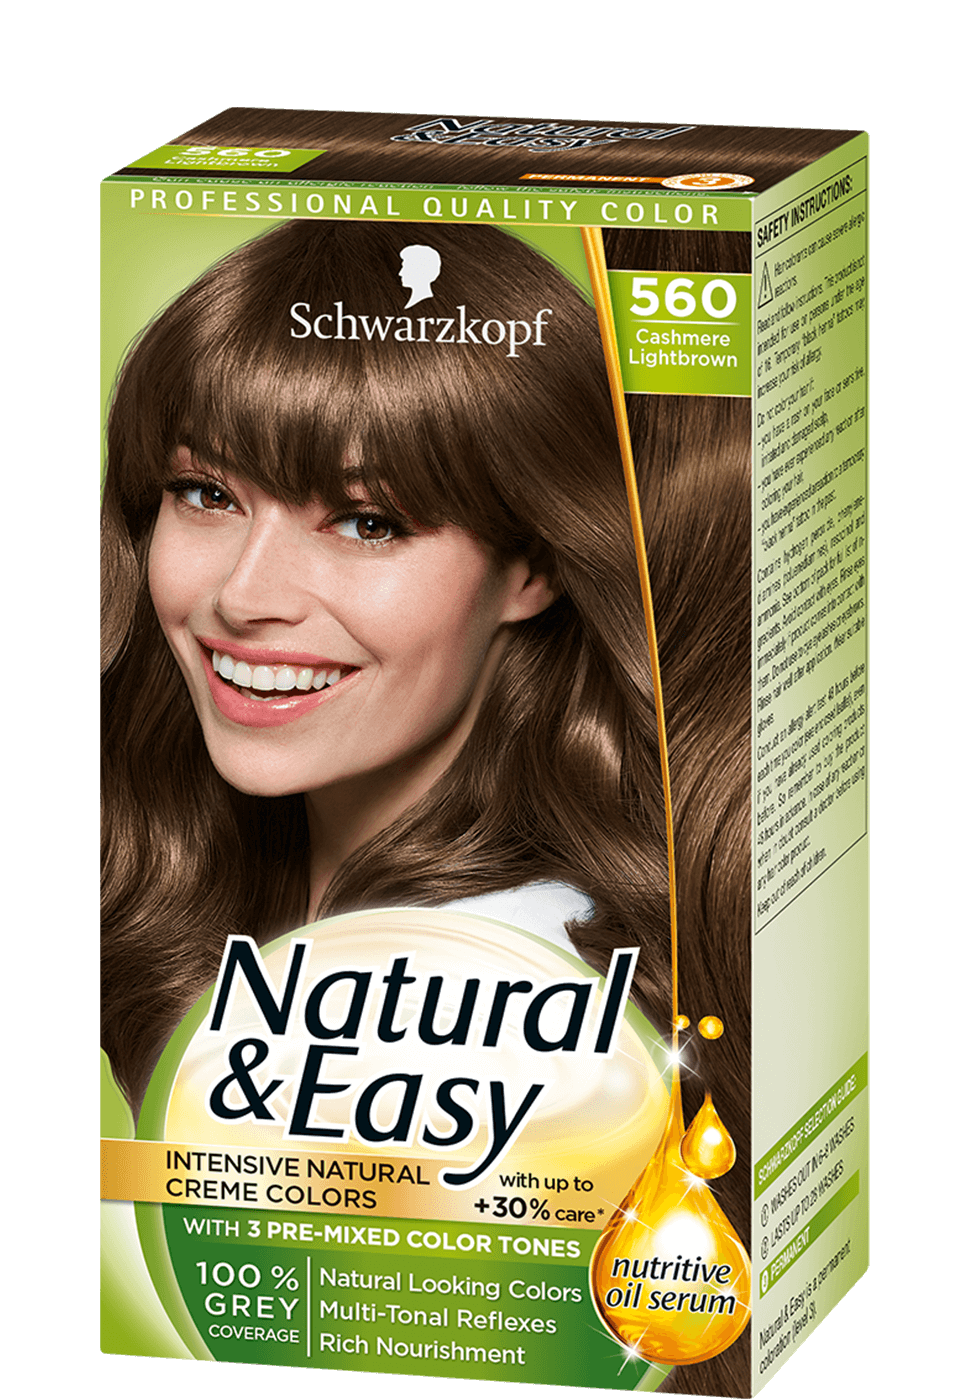 natural_easy_com_brown_hair_560_cashmere_lightbrown_970x1400